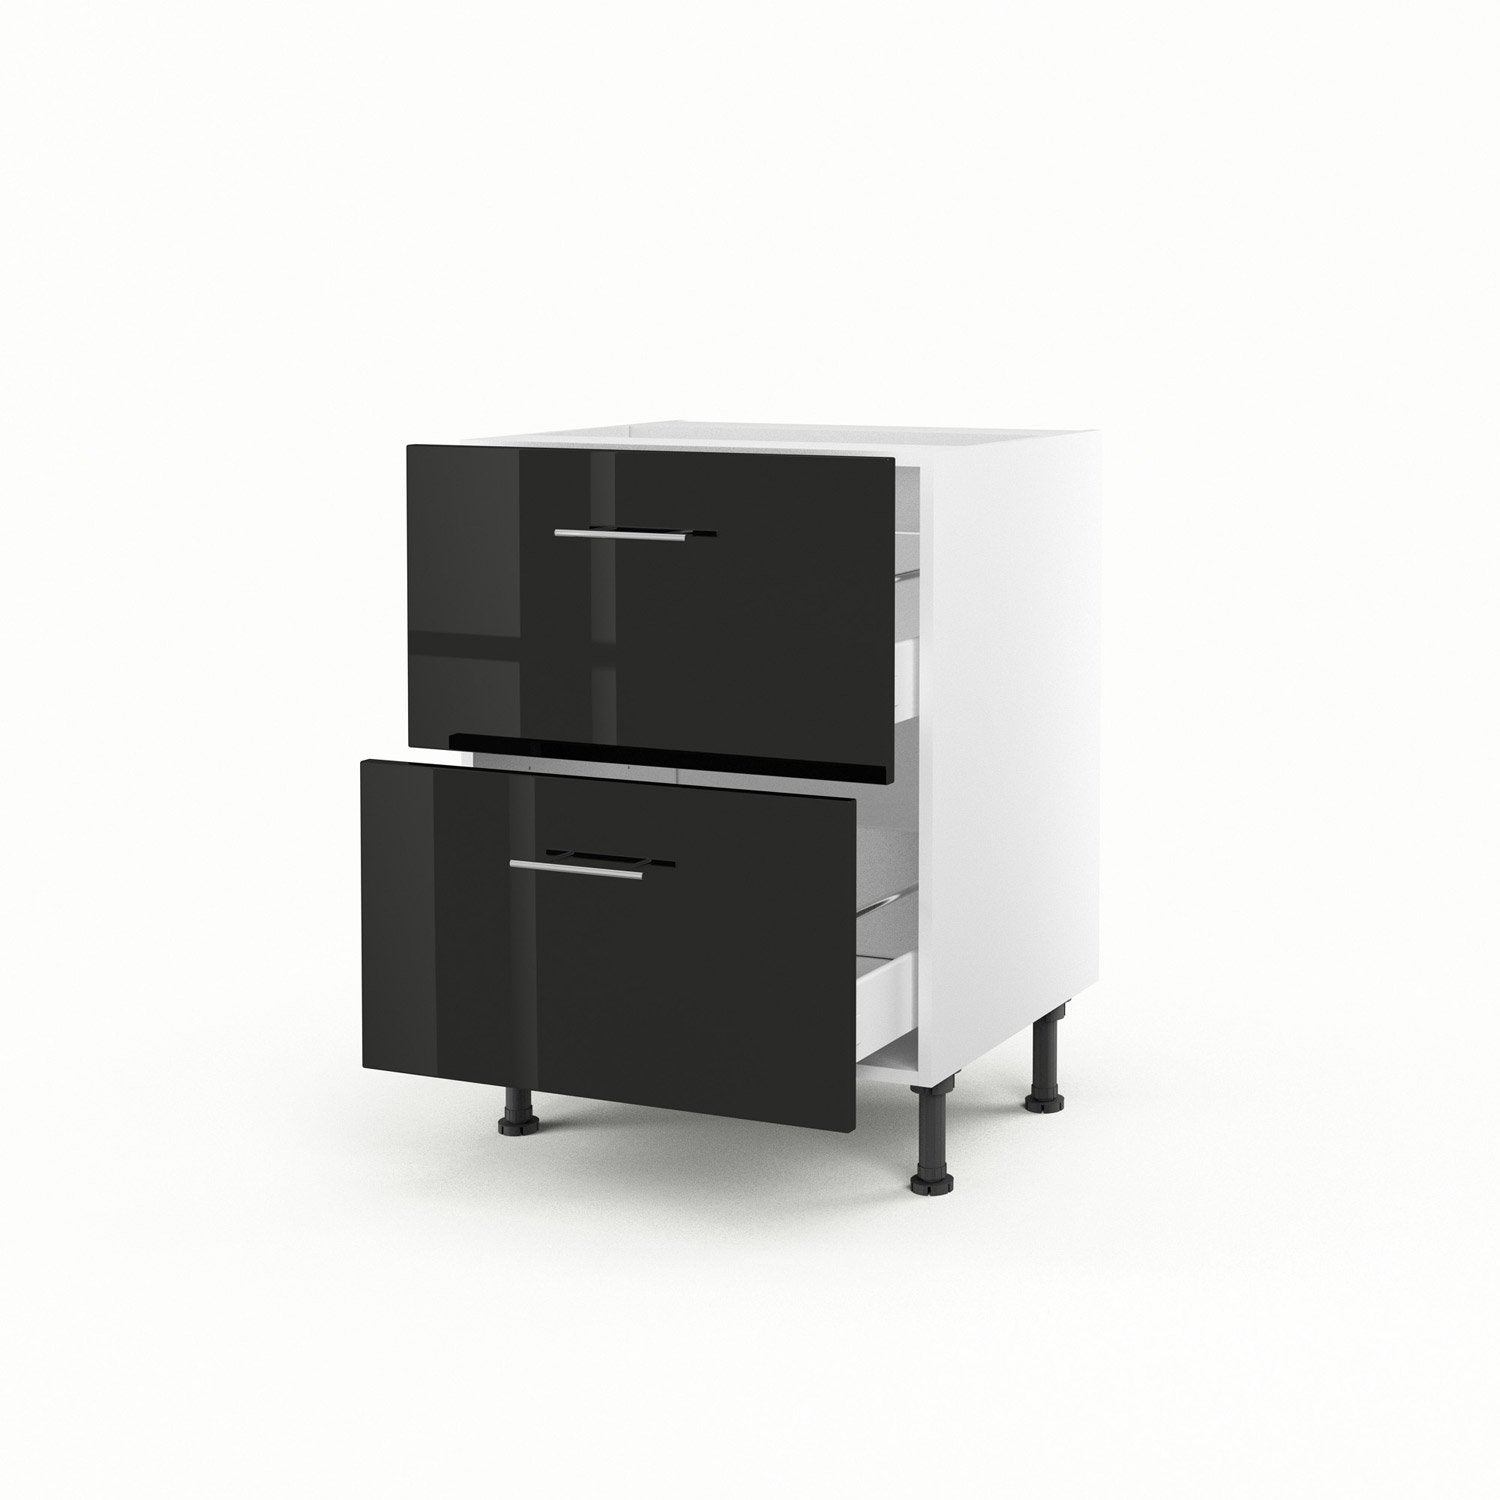 meuble de cuisine bas noir 2 tiroirs rio x x cm leroy merlin. Black Bedroom Furniture Sets. Home Design Ideas